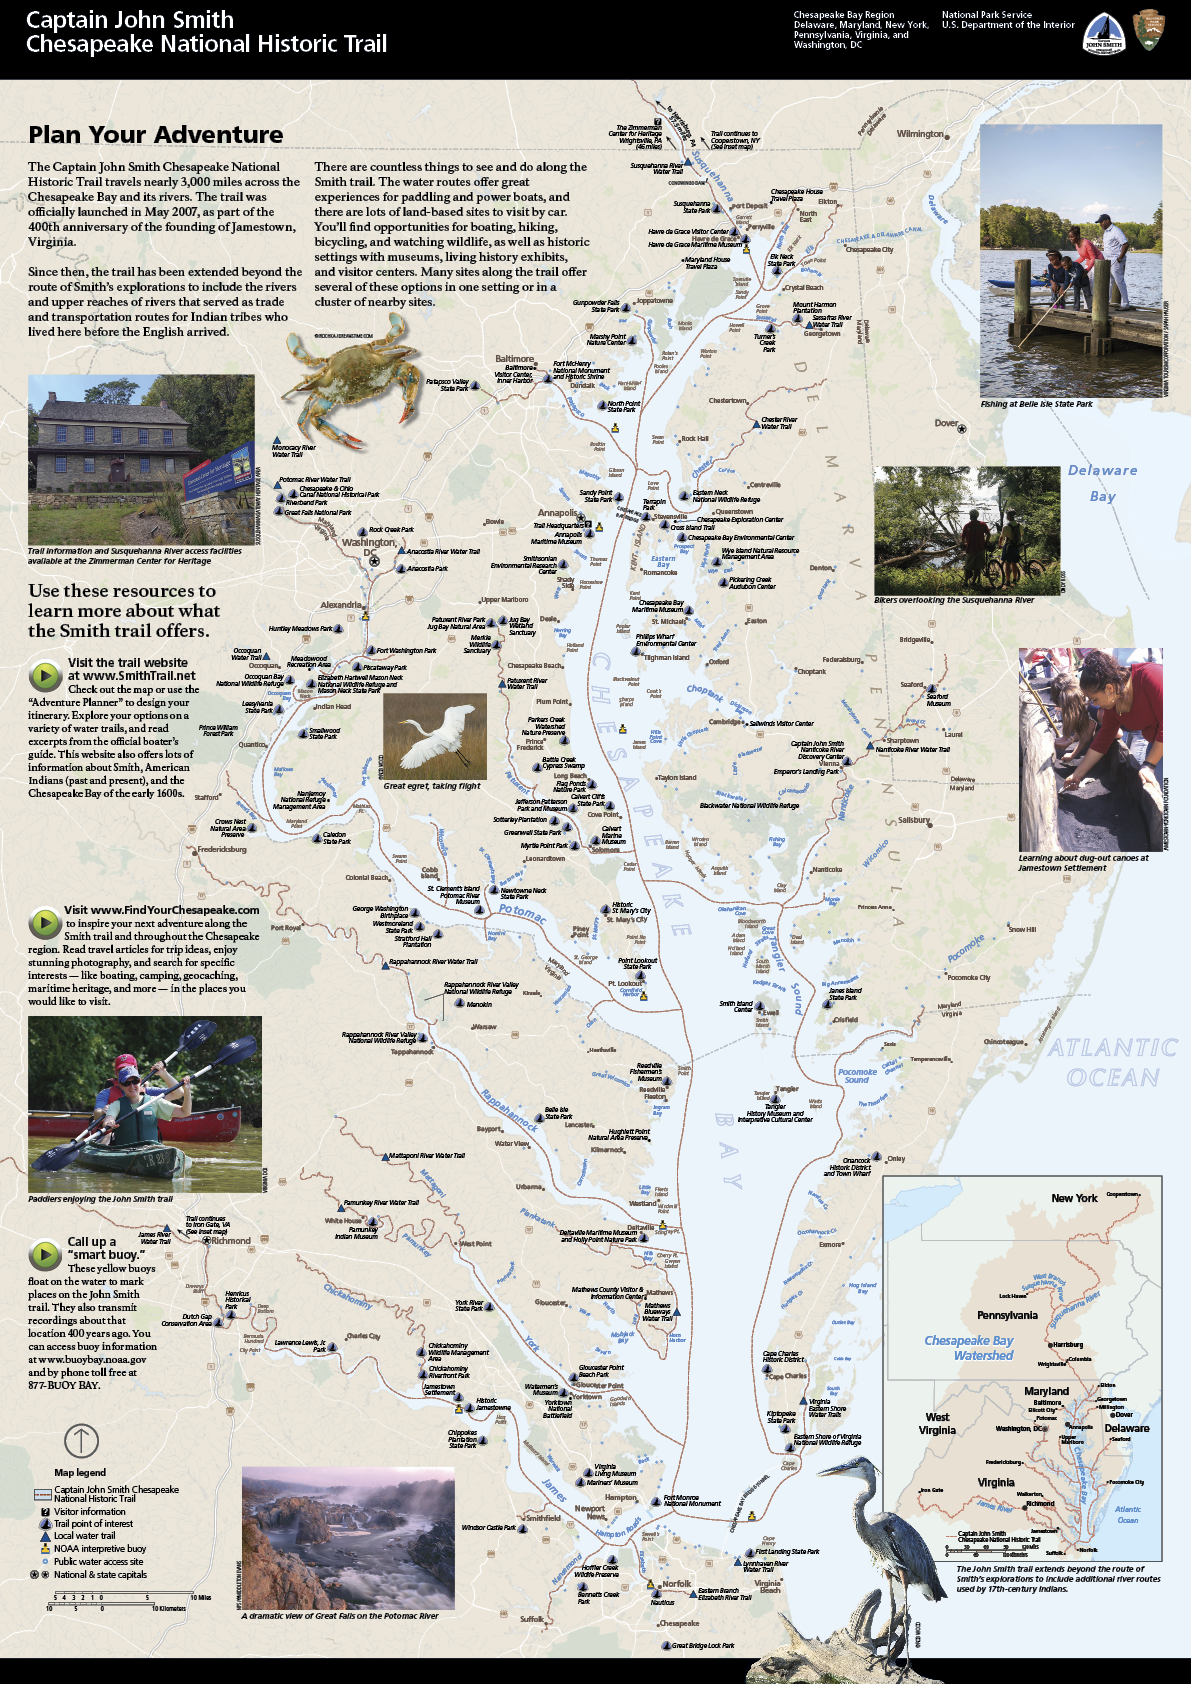 A map of the tidal Chesapeake Bay featuring the path of the Captain John Smith Chesapeake Trail and images around the region. There is also an inset map of the entire Chesapeake Bay watershed, showing the trail entire route up to Copperstown, NY.